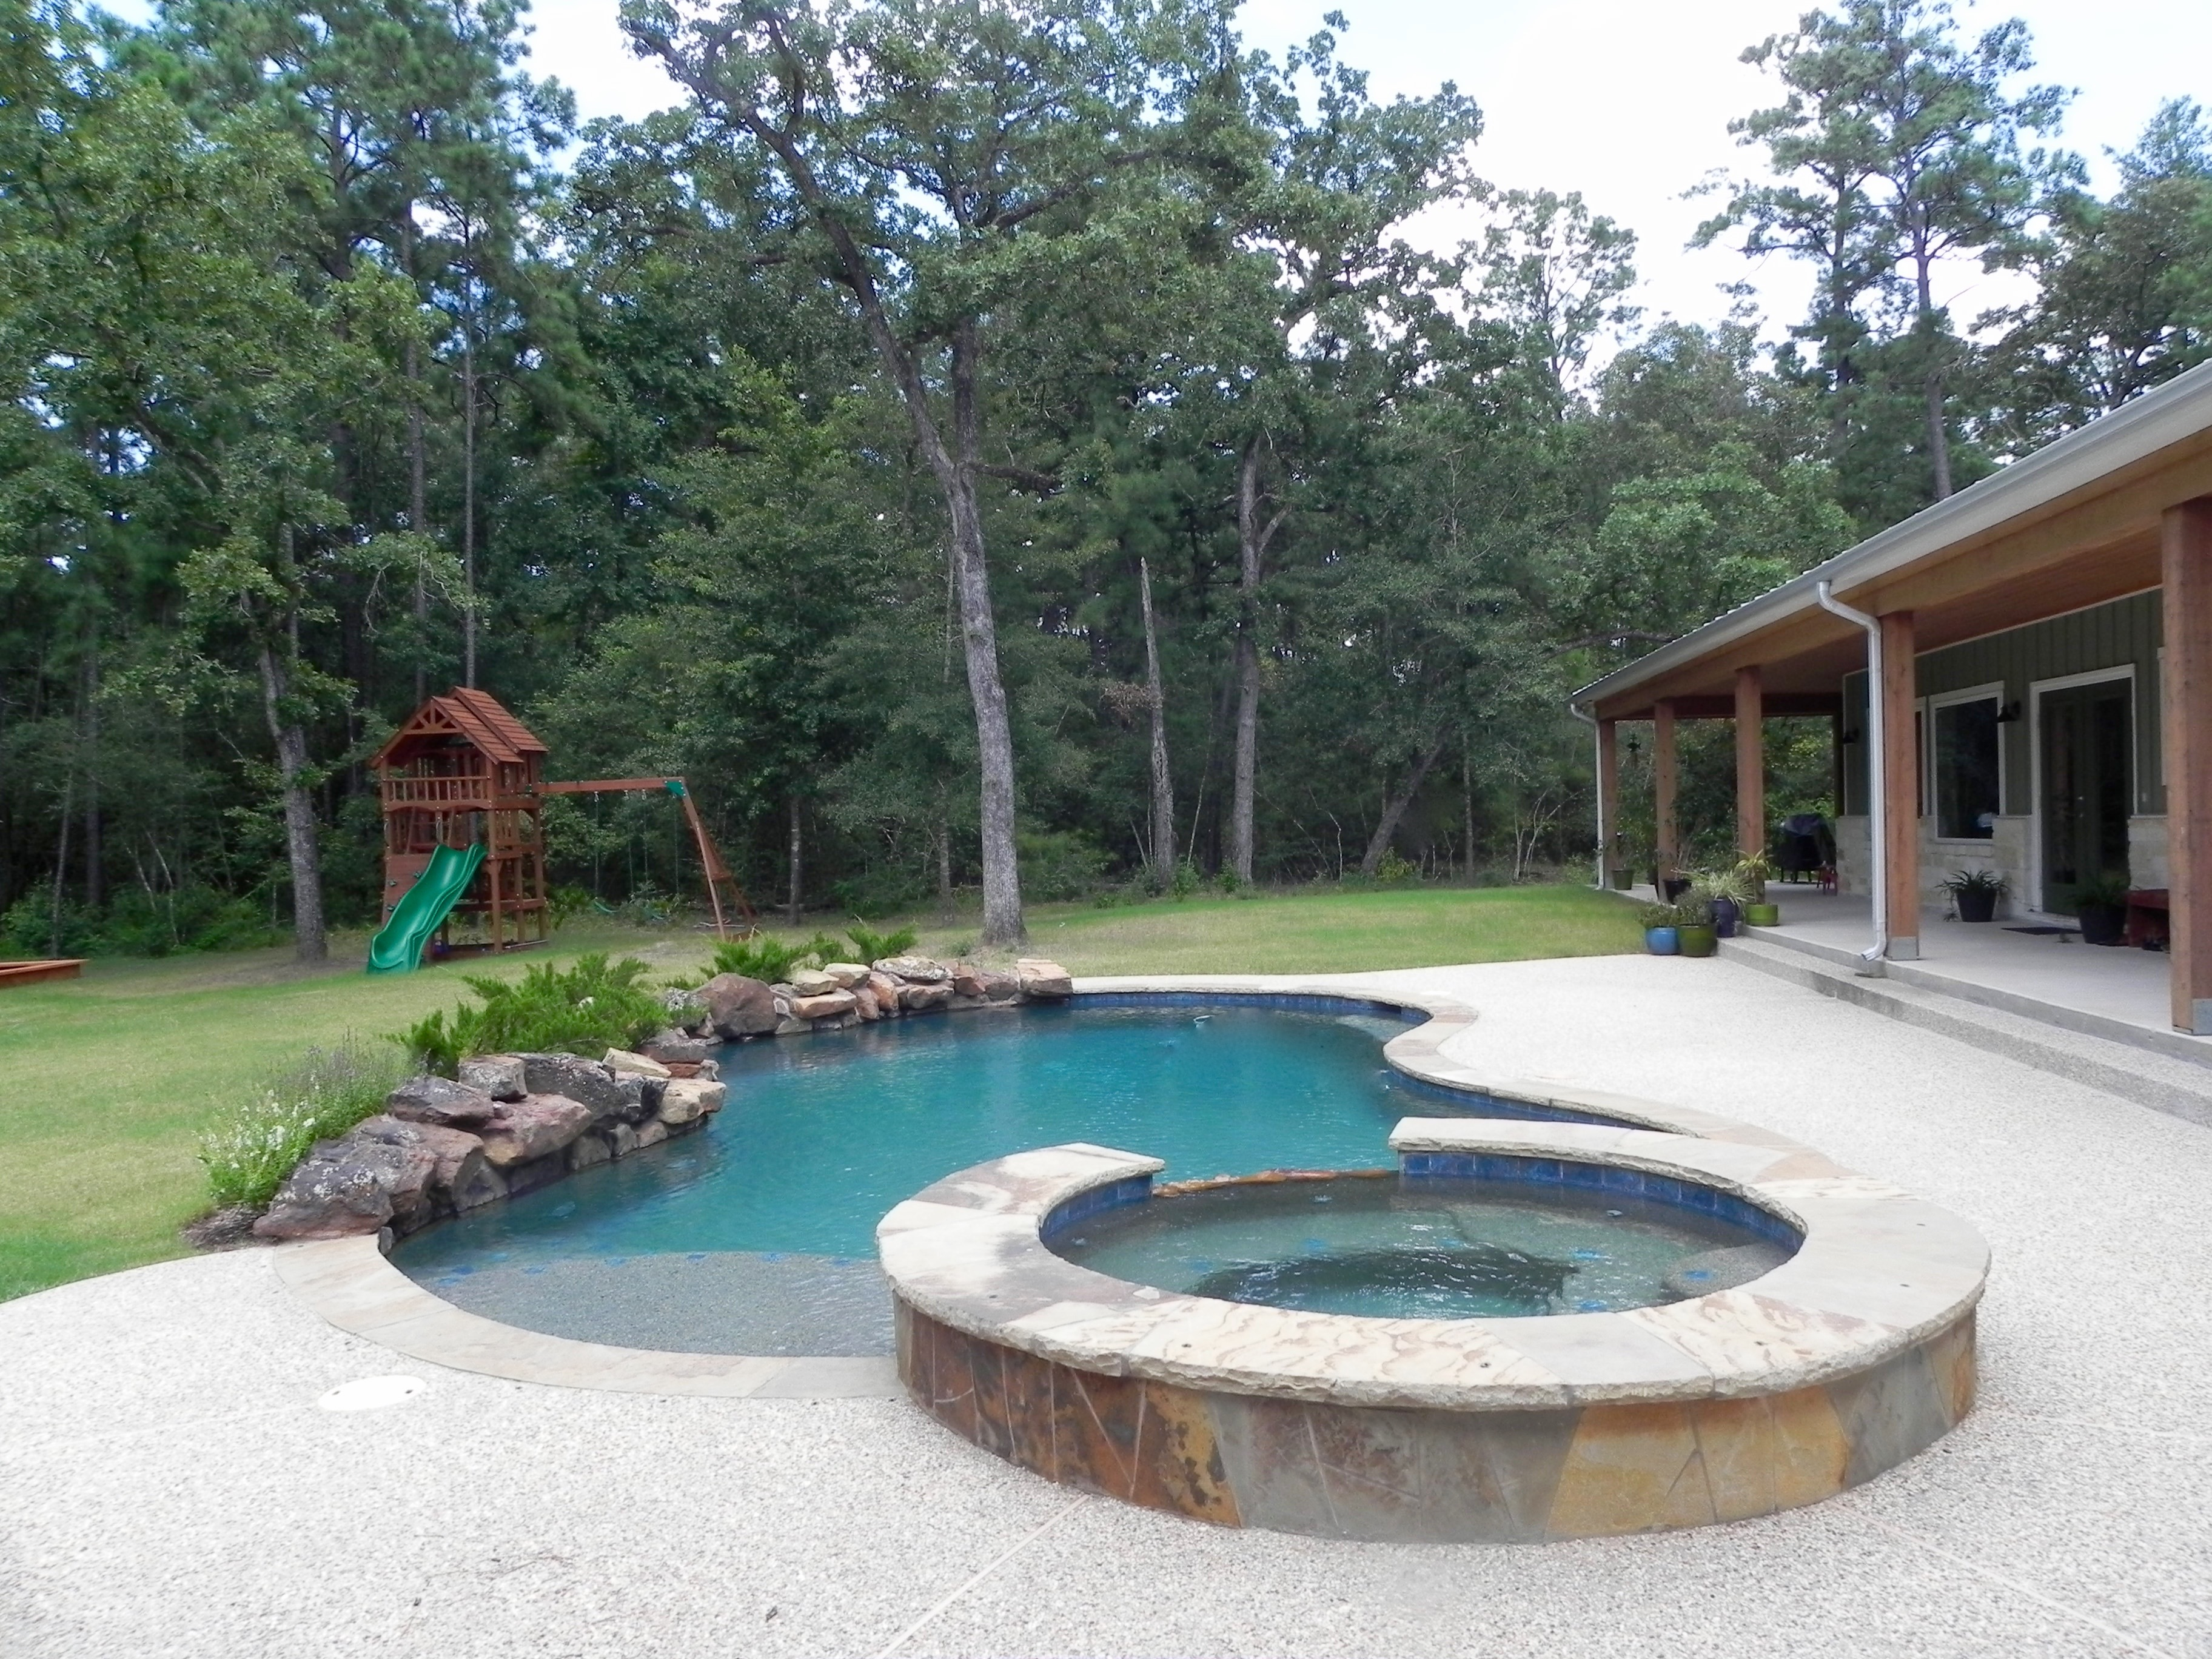 Outdoor oasis obchinc com for Garden oases pool entrance